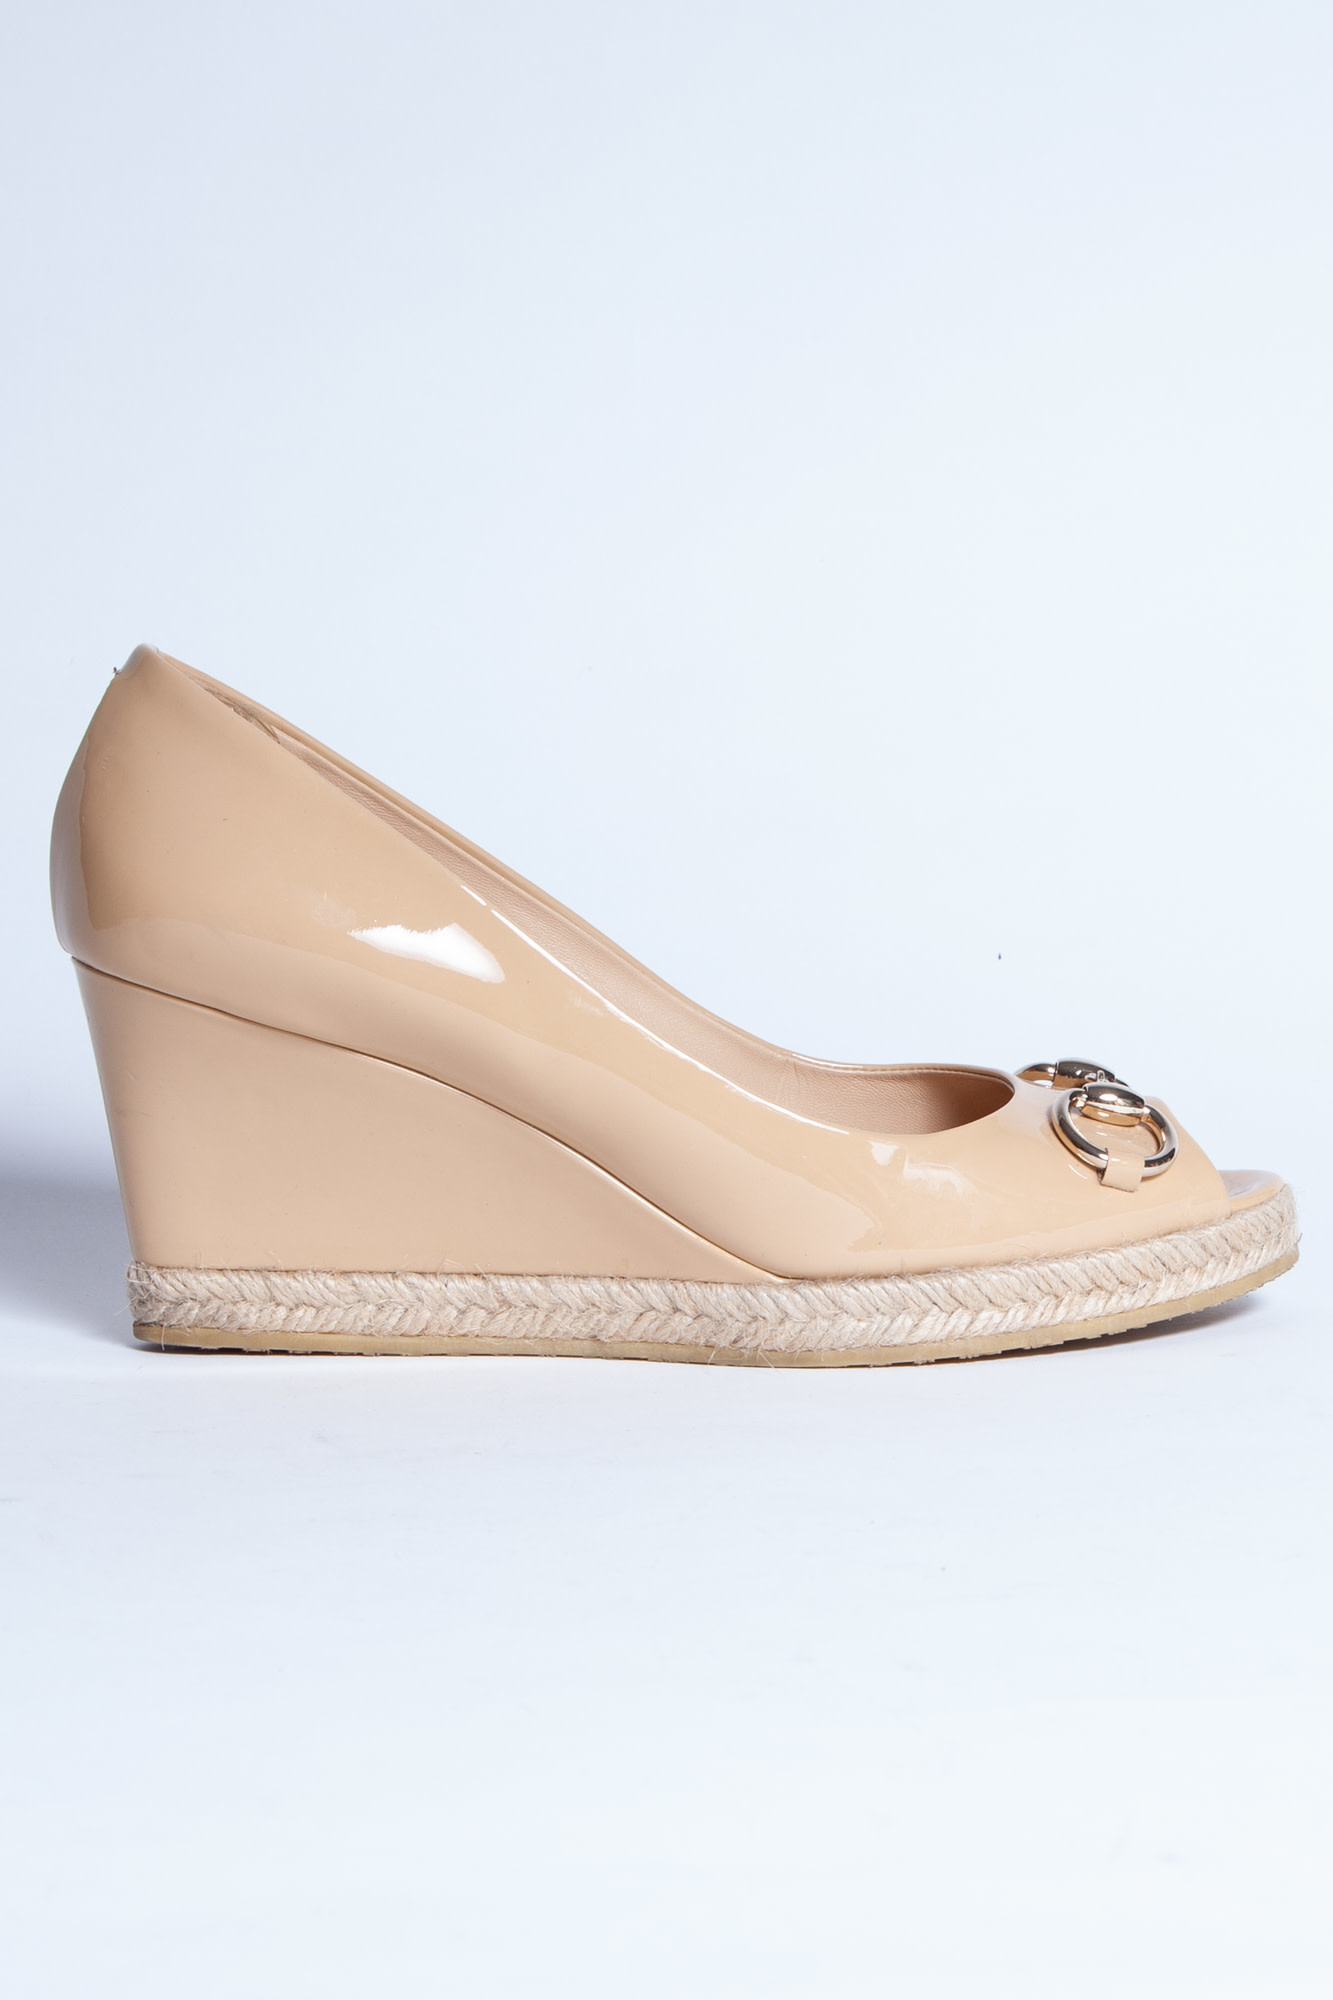 Gucci BEIGE PATENT LEATHER WEDGE HEELS